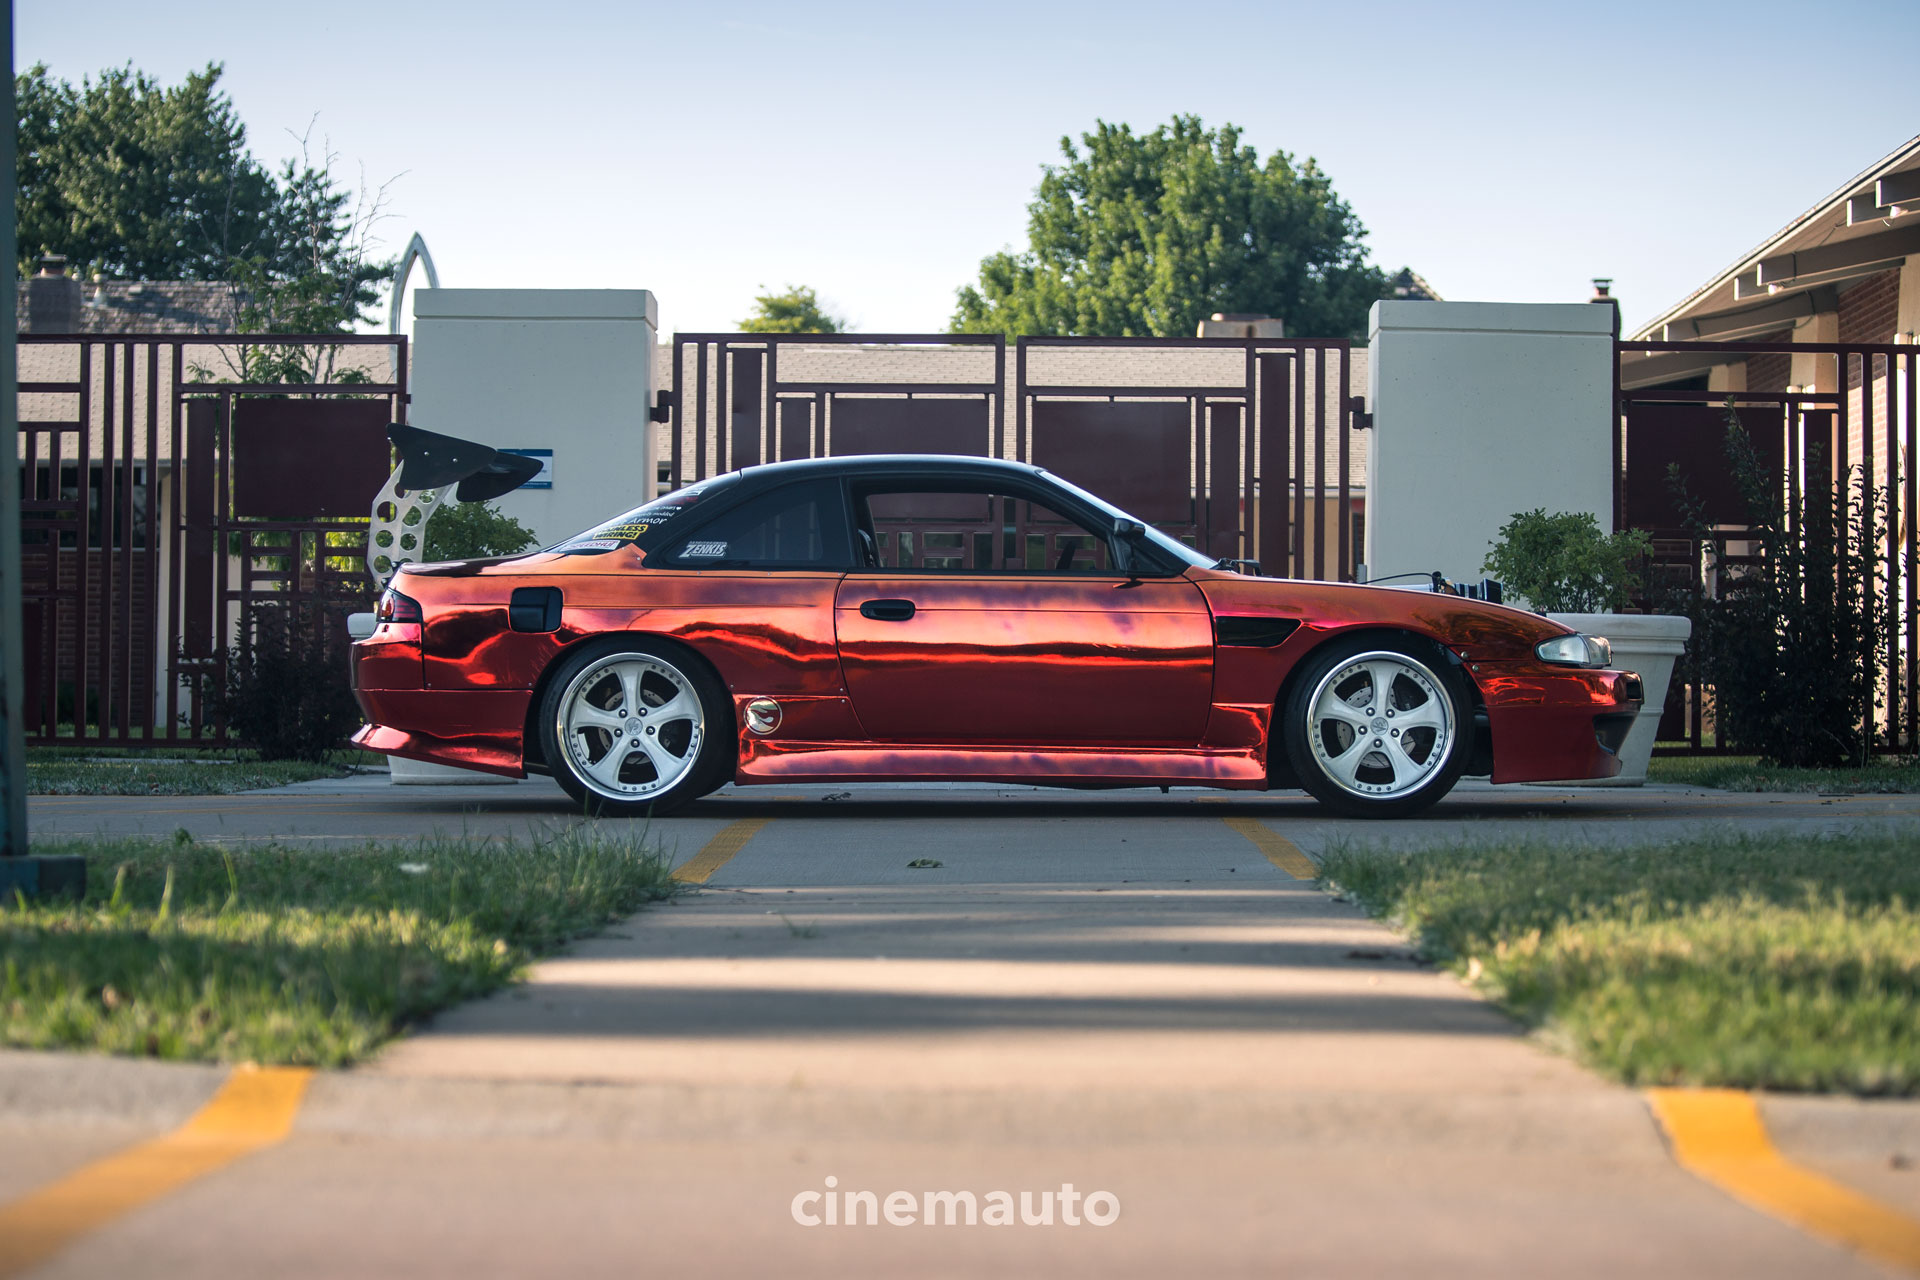 cinemauto-midwest-car-photography-jp10.jpg